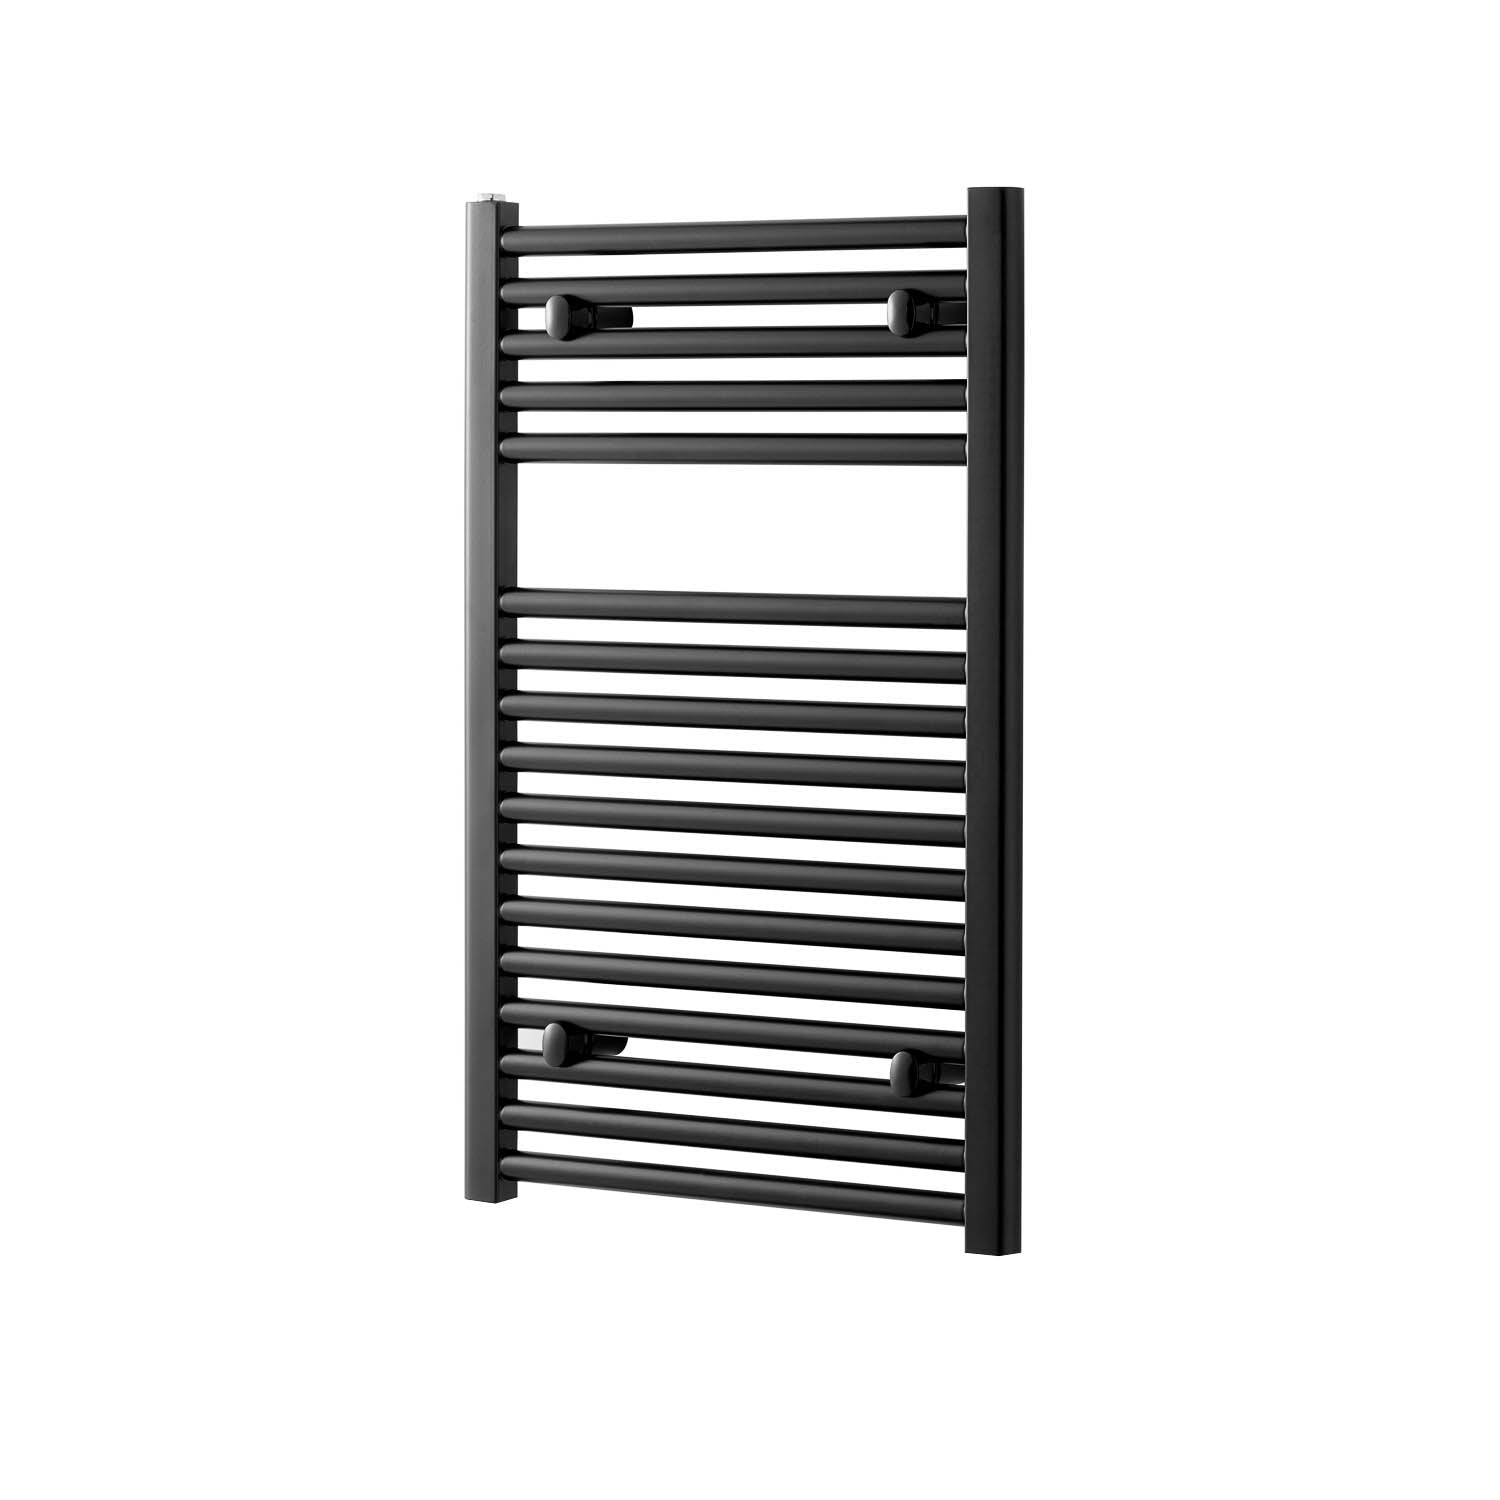 800x500mm Modale Anti-Scald Towel Rail with a matt black finish on a white background